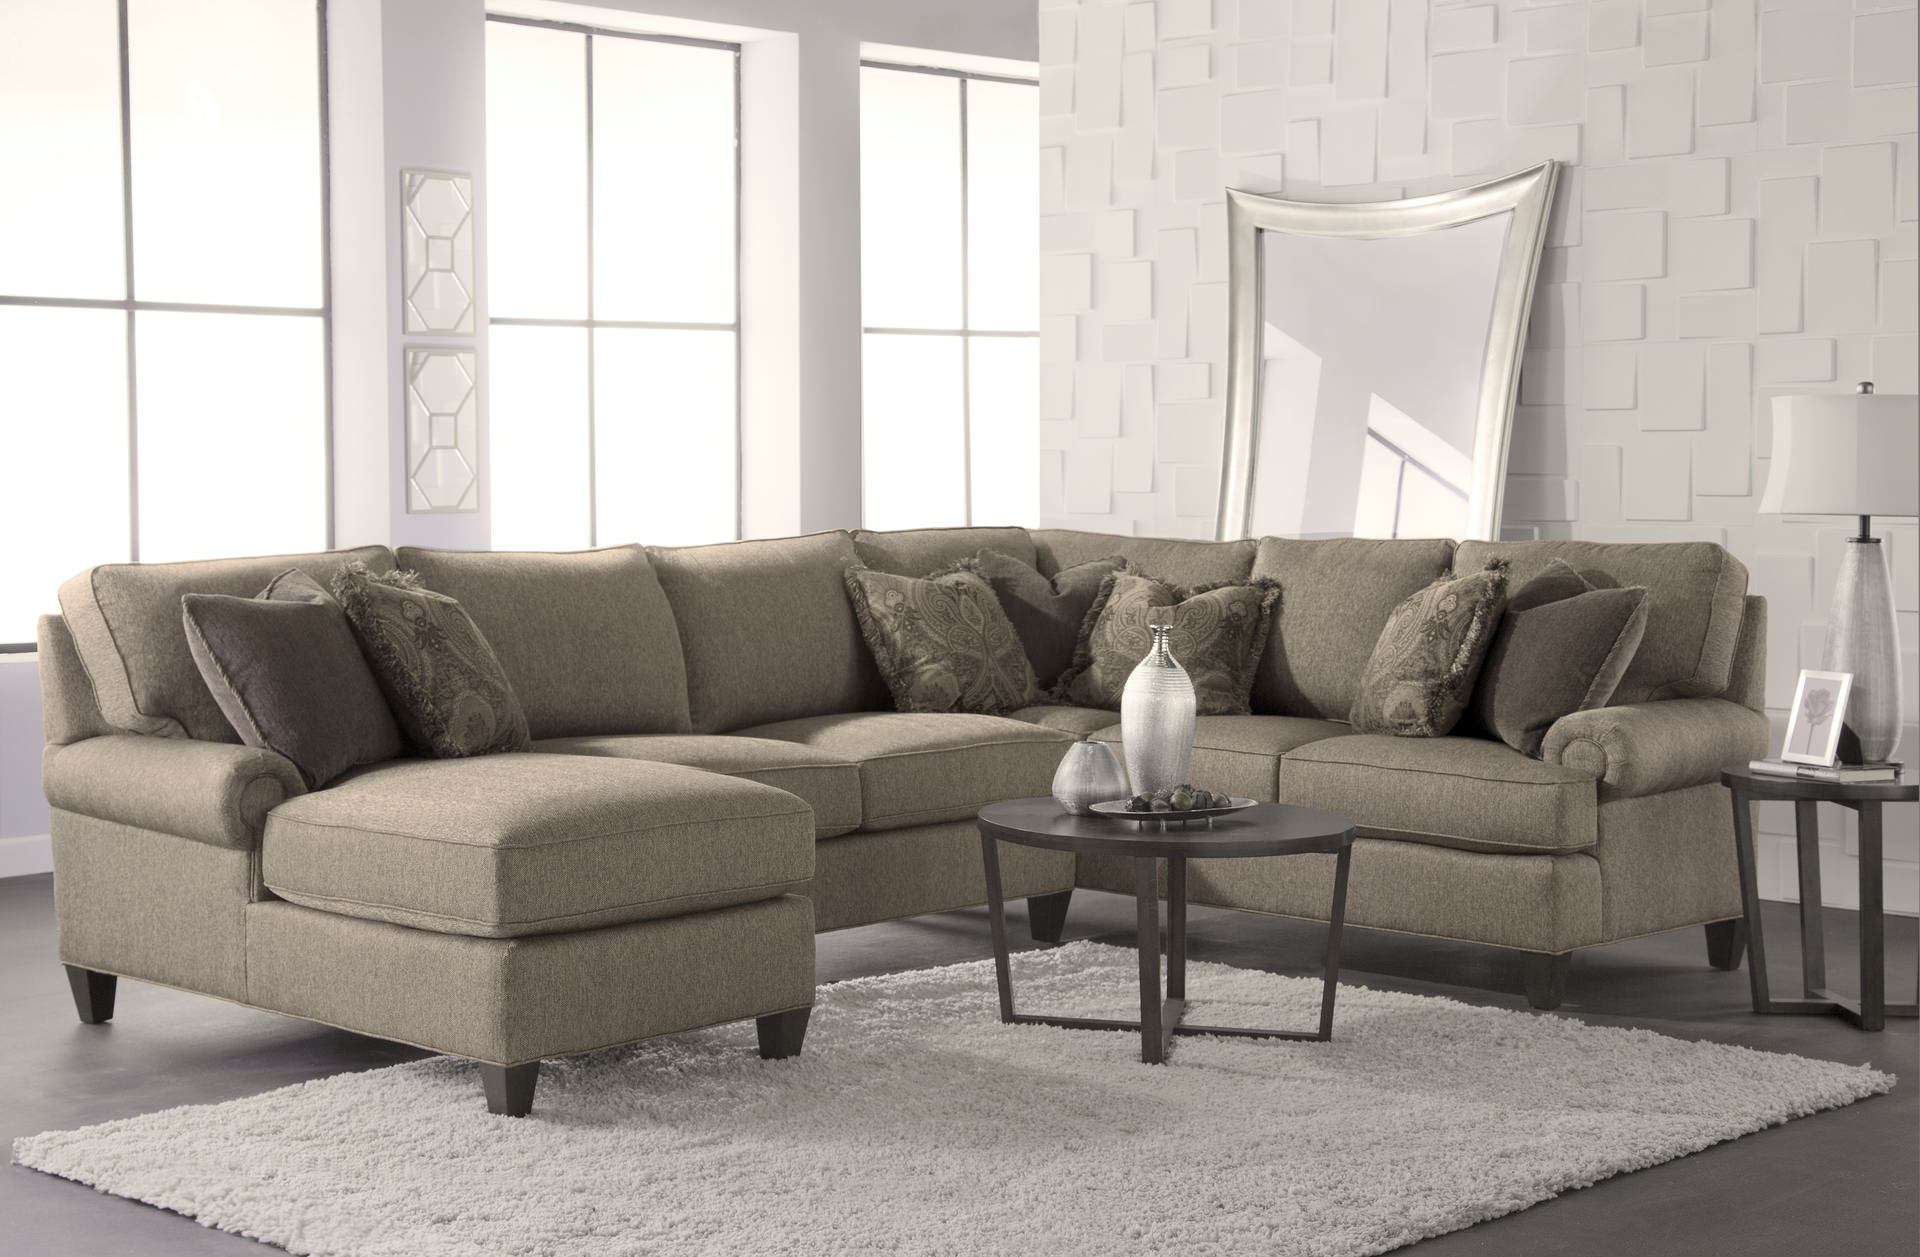 2018 Malbry Point 3 Piece Sectionals With Raf Chaise Regarding Sectional Matters – Design Bloghom Furniture (View 17 of 20)